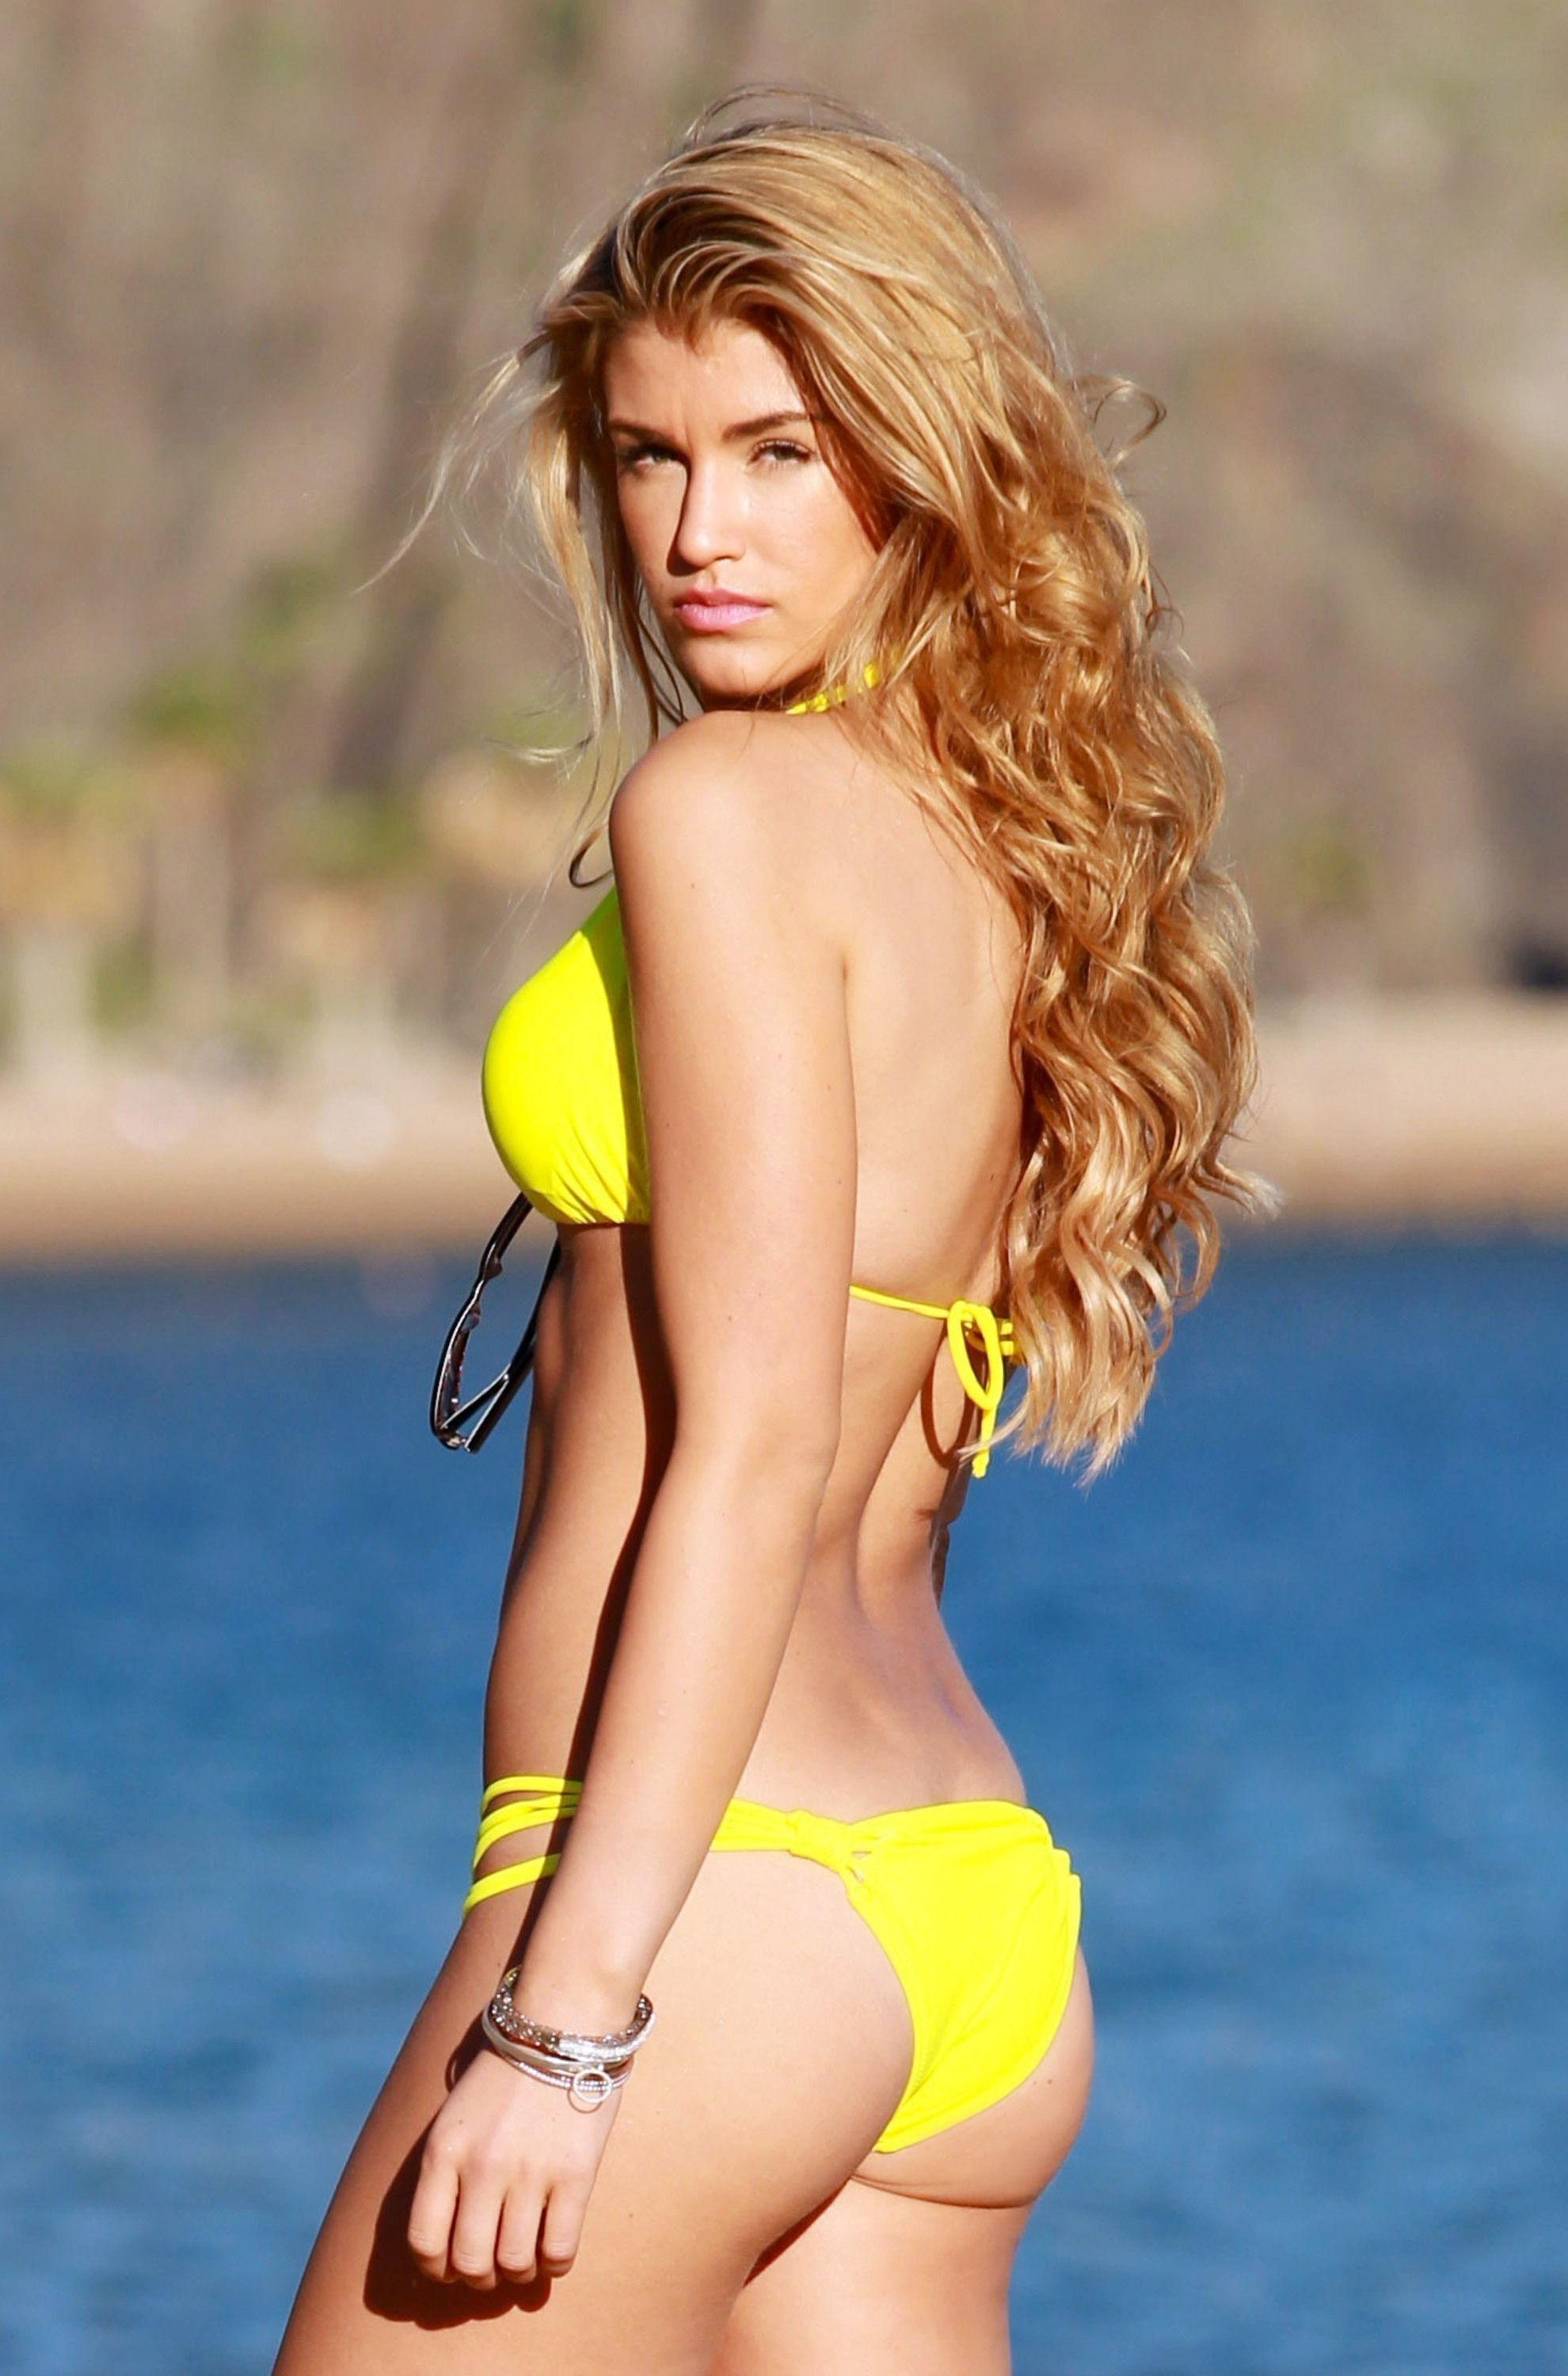 Sexy Amy Willerton nudes (47 photos), Tits, Fappening, Feet, bra 2020